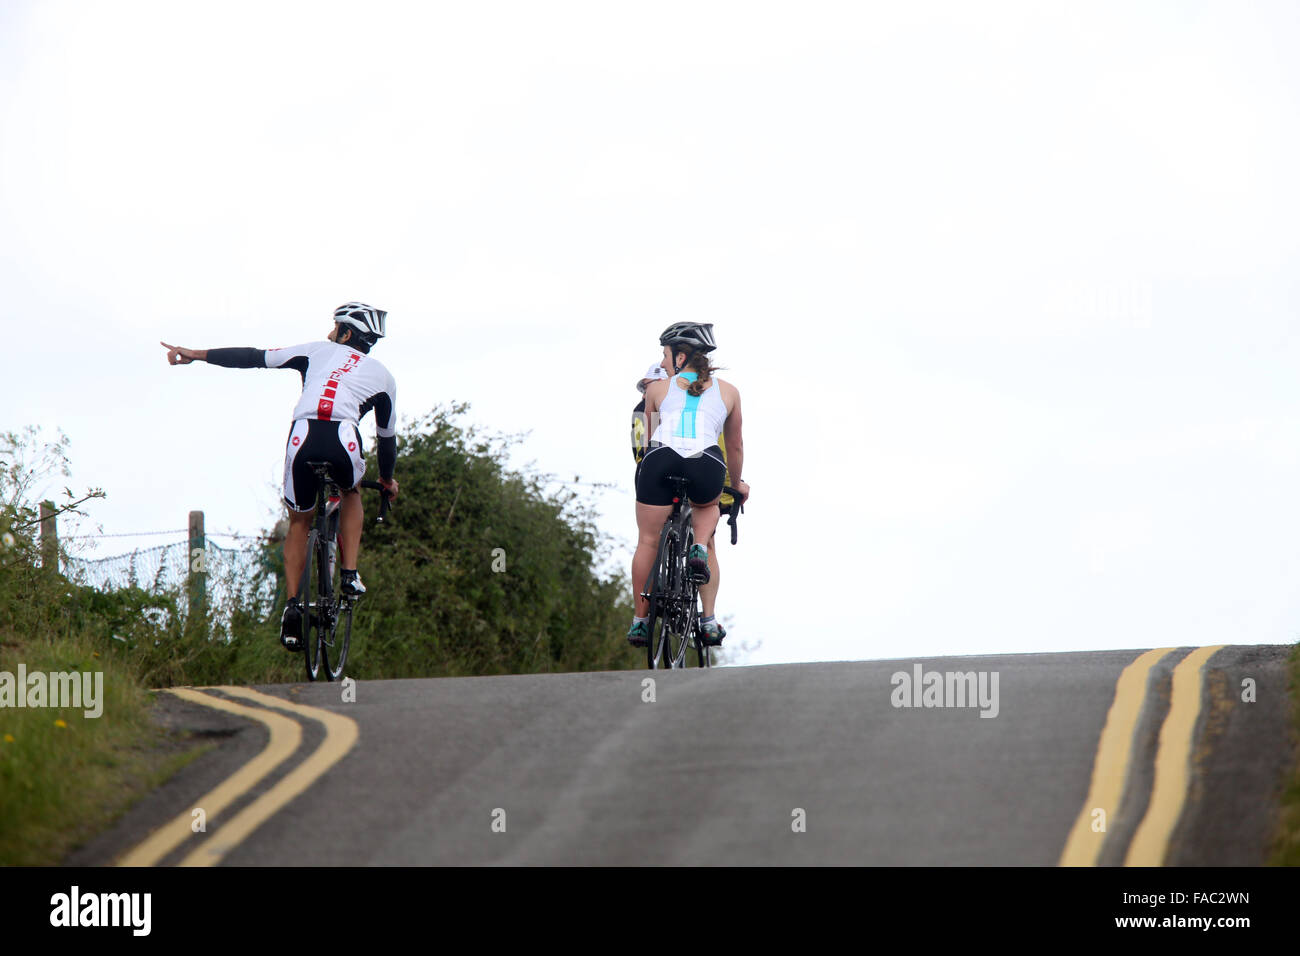 Road cyclists enjoying the view, June 2015 - Stock Image